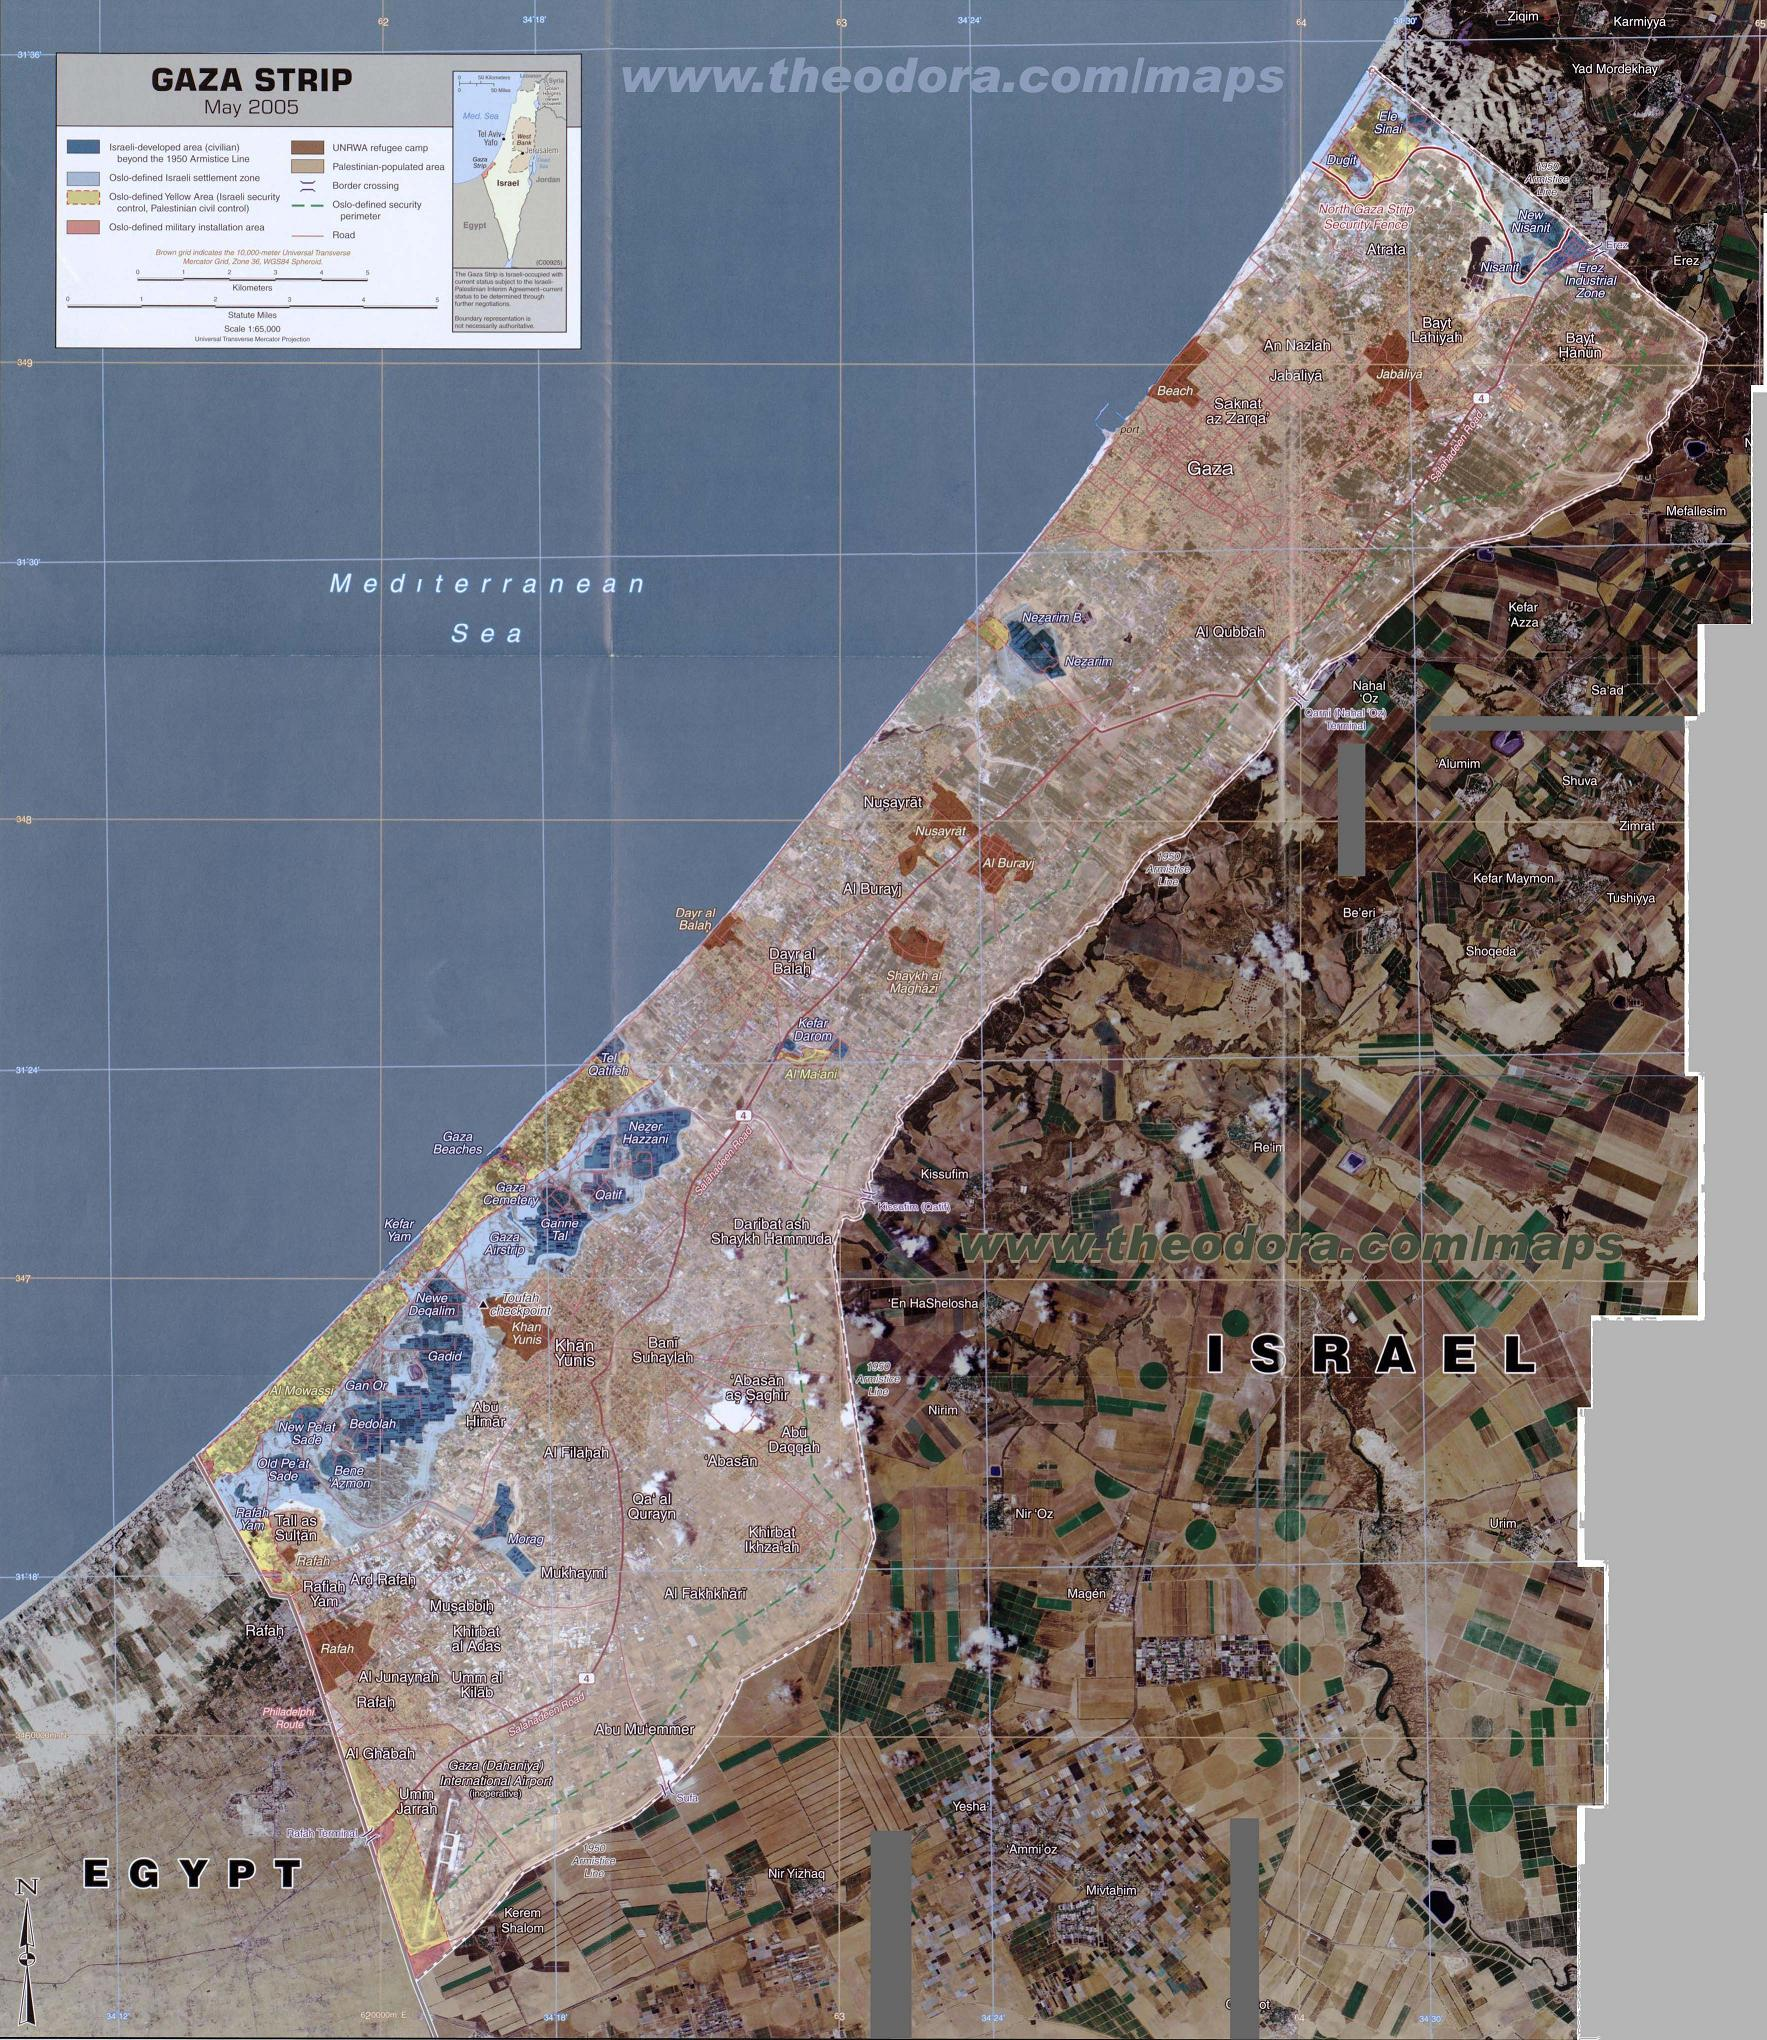 detailed annotated photo-montage map of Gaza Strip